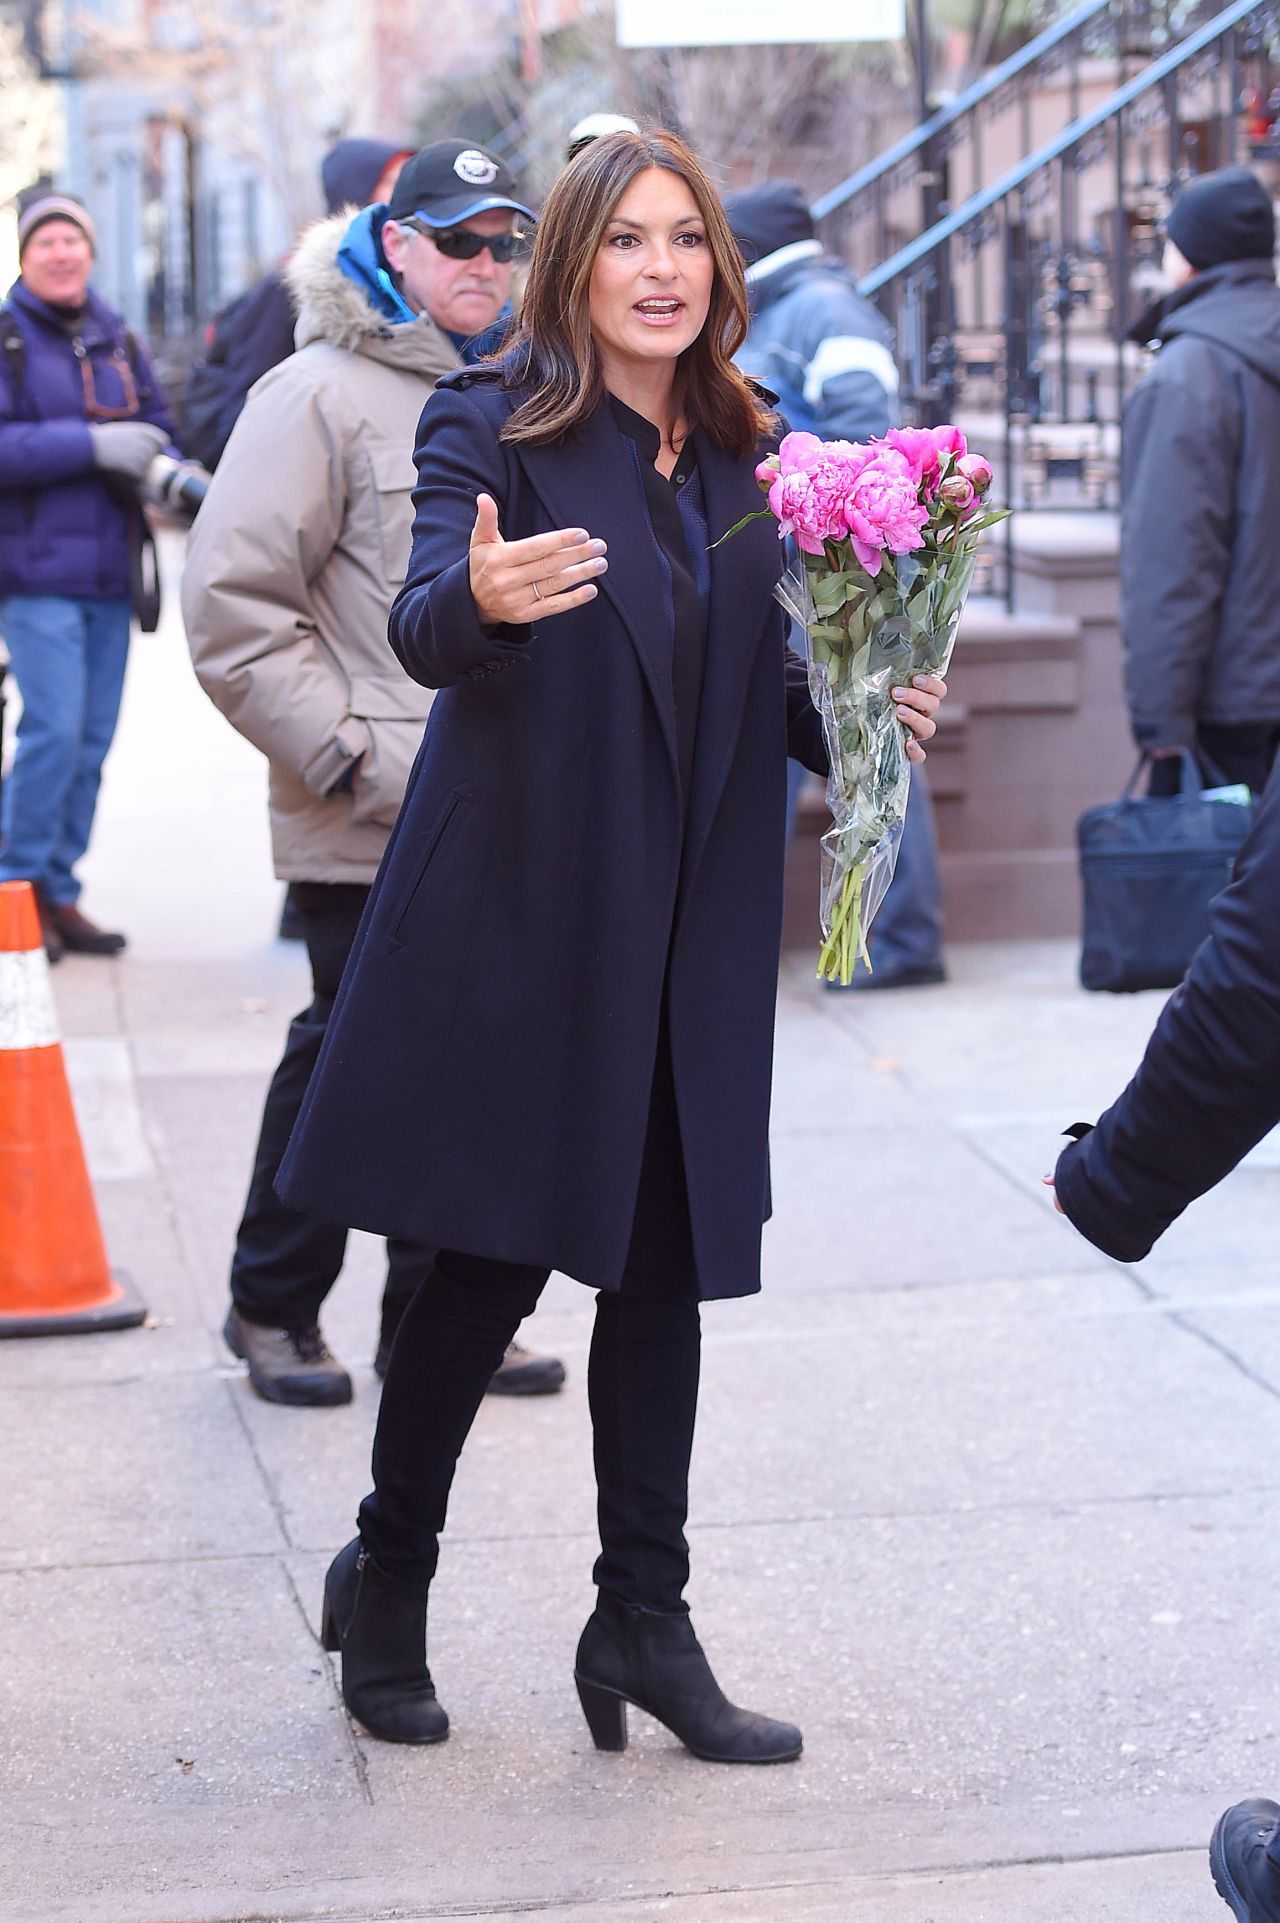 Mariska Hargitay Out In New York City 1 21 2016